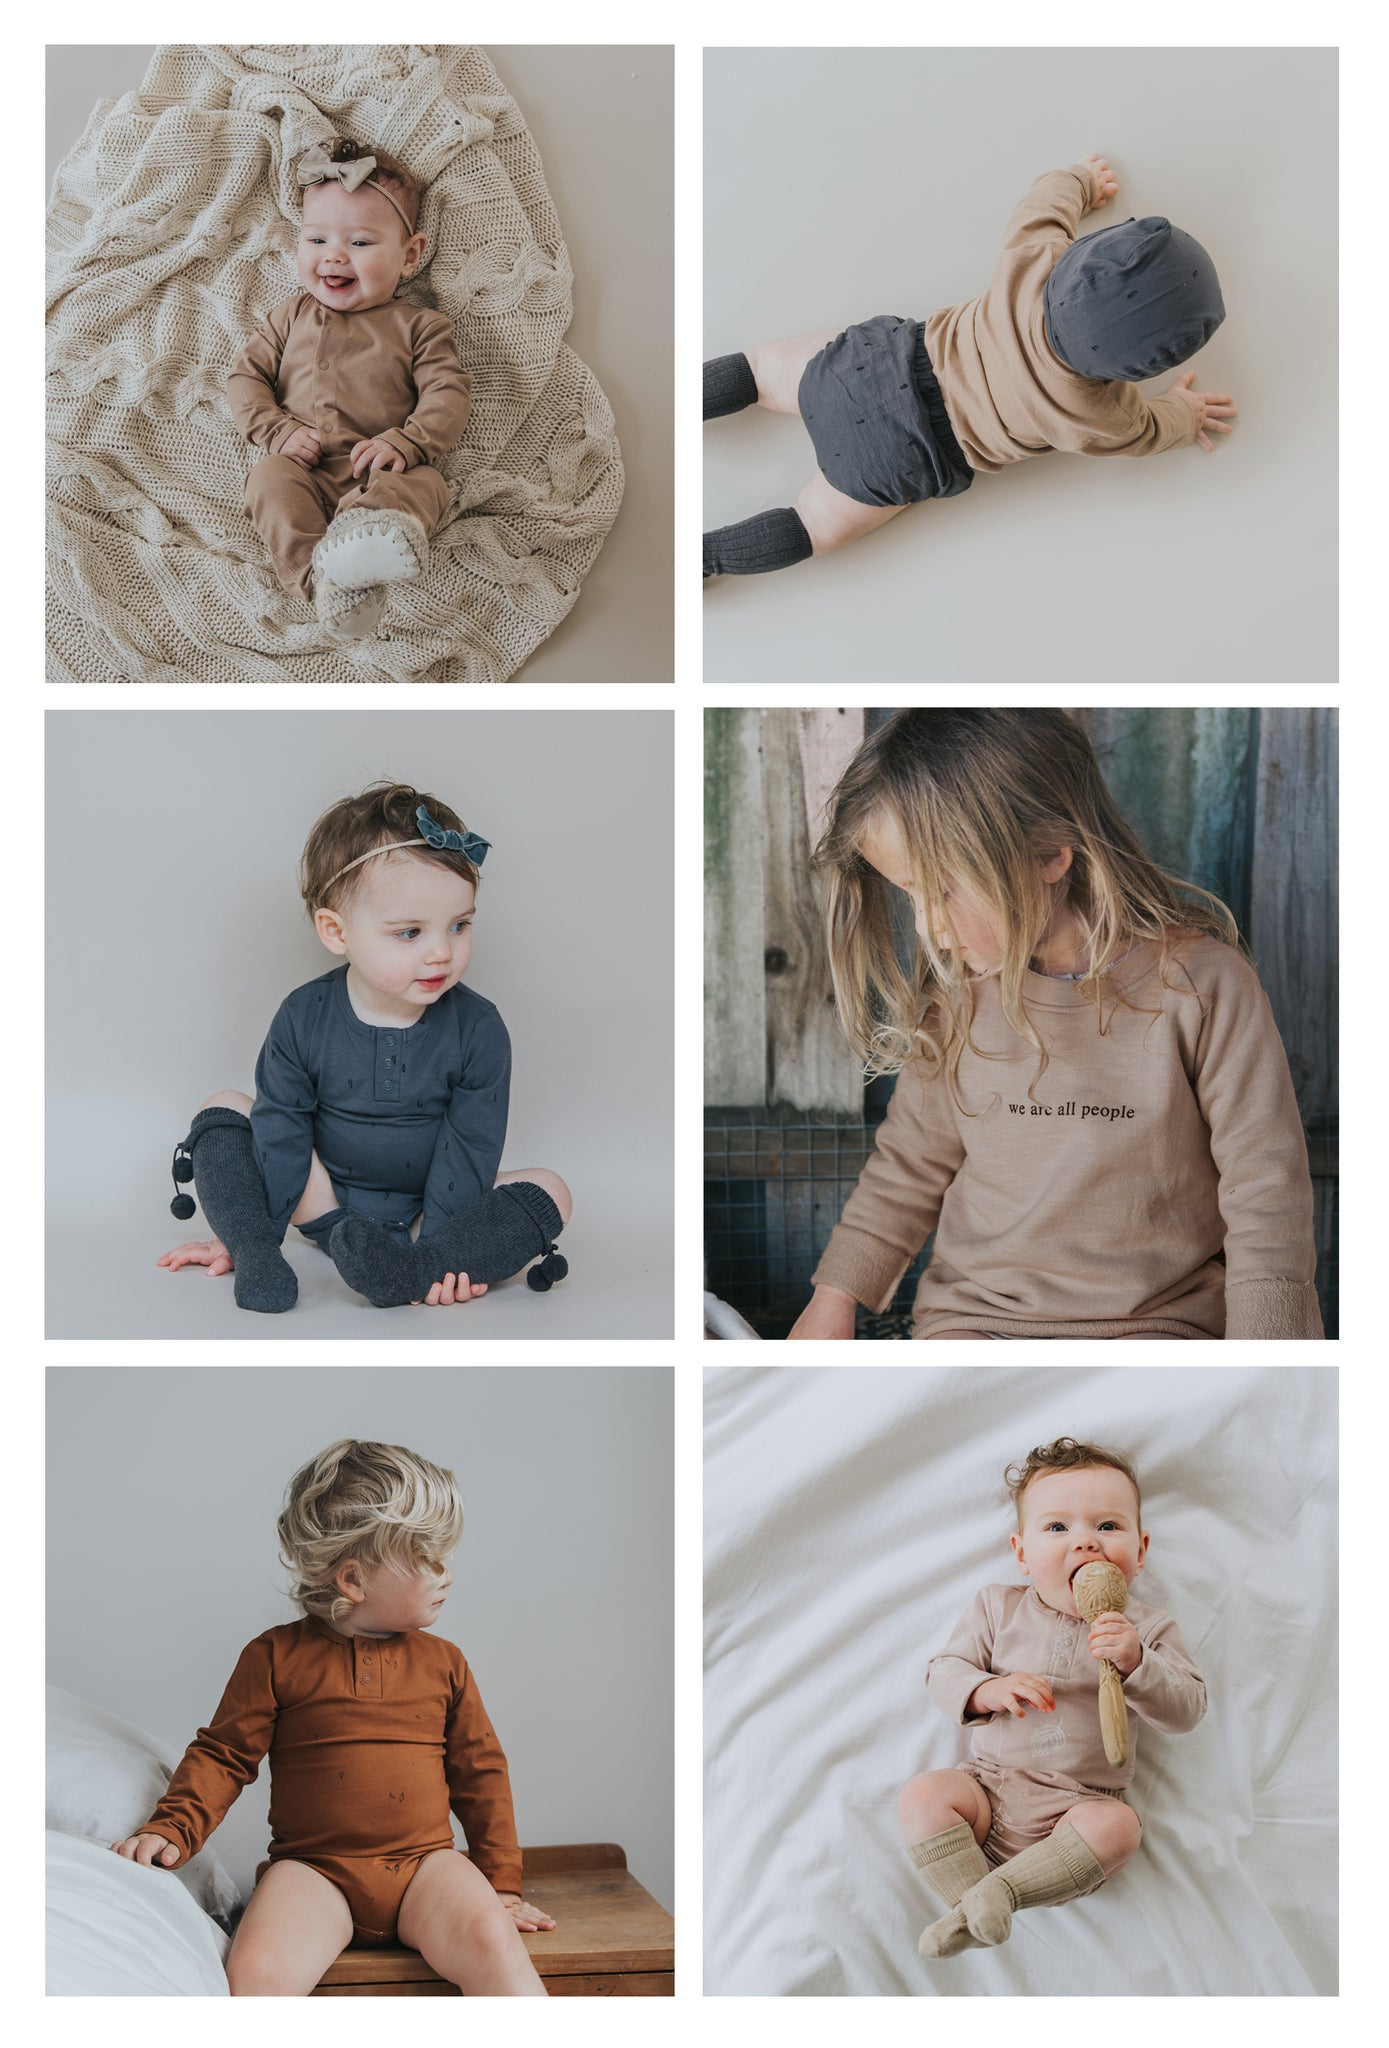 buck and baa winter 2019 organic cotton baby clothing range